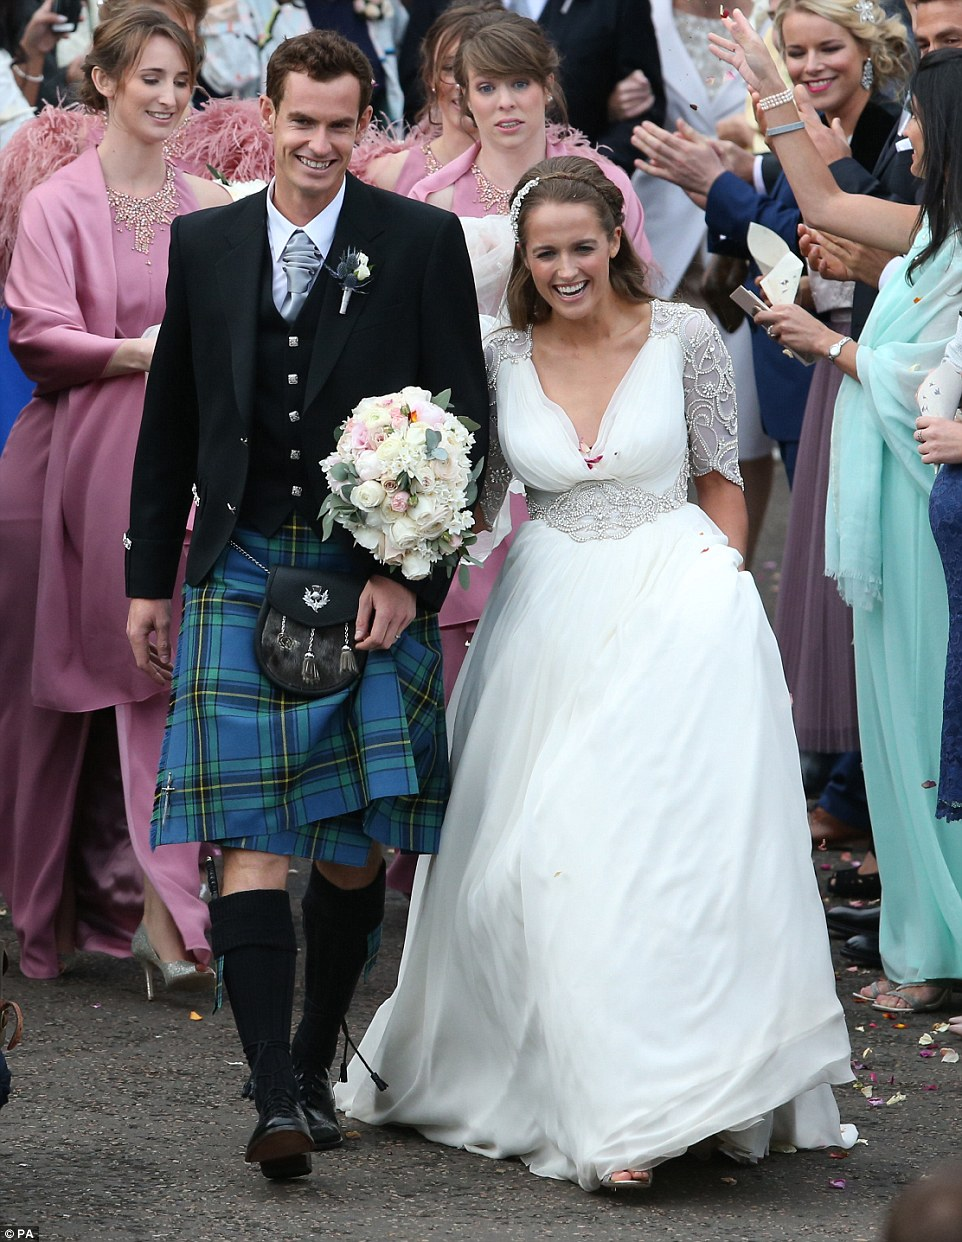 Andy Murray posts hilarious plan wedding day EMOJIS wedding dresses sears Introducing Mr and Mrs Murray The first pictures of Andy Murray and new wife Kim